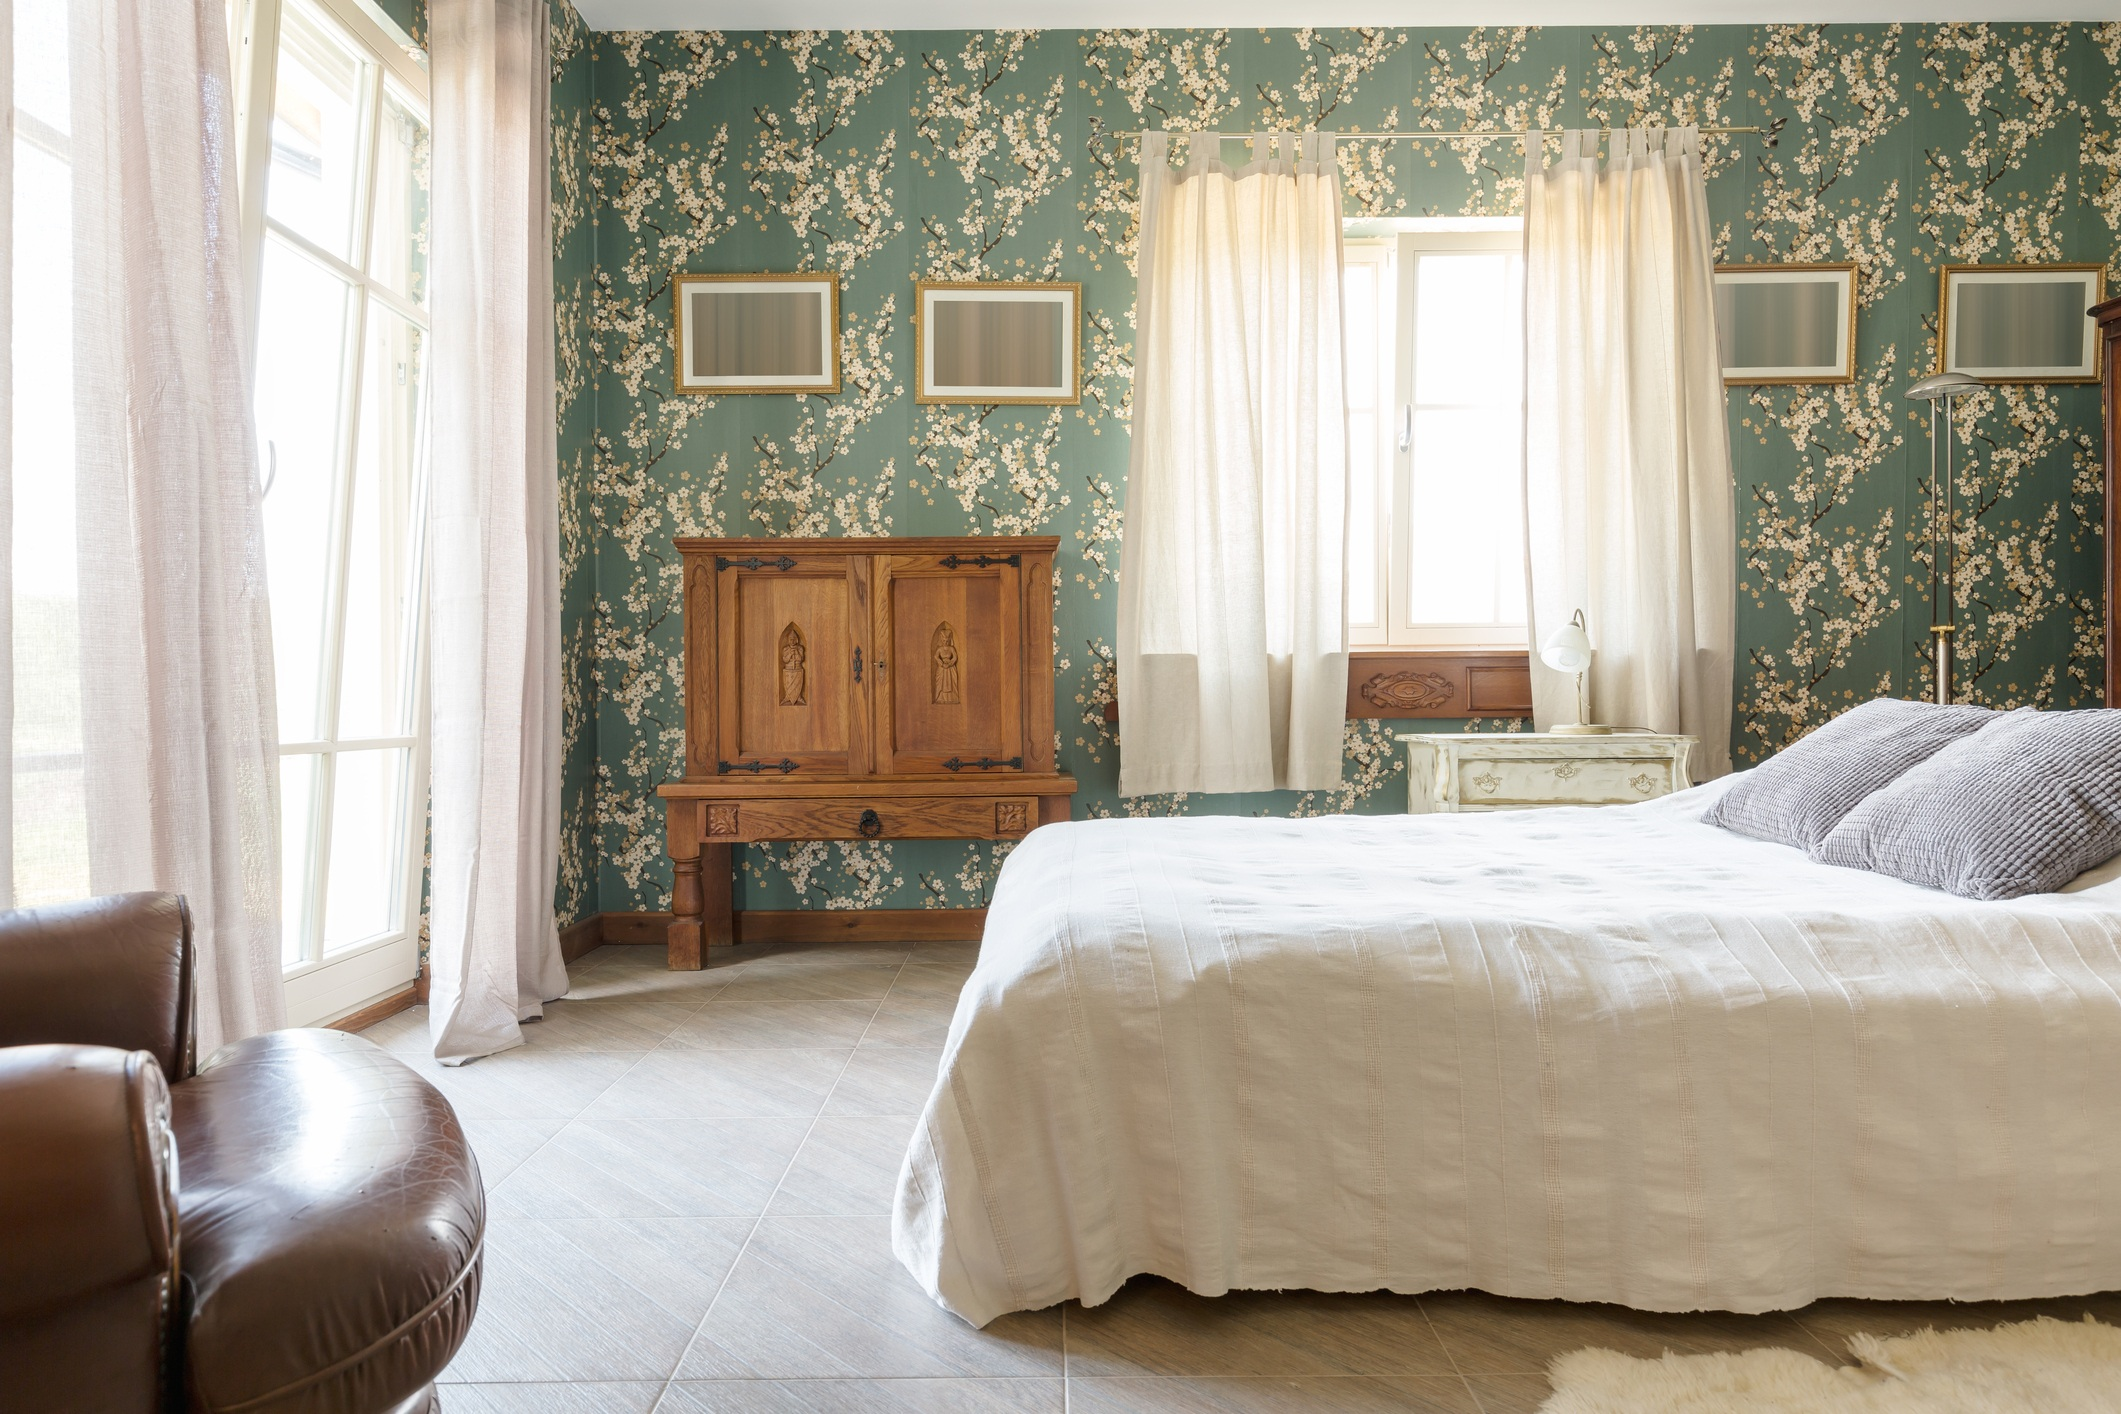 Magnificent bedroom for grand personalities